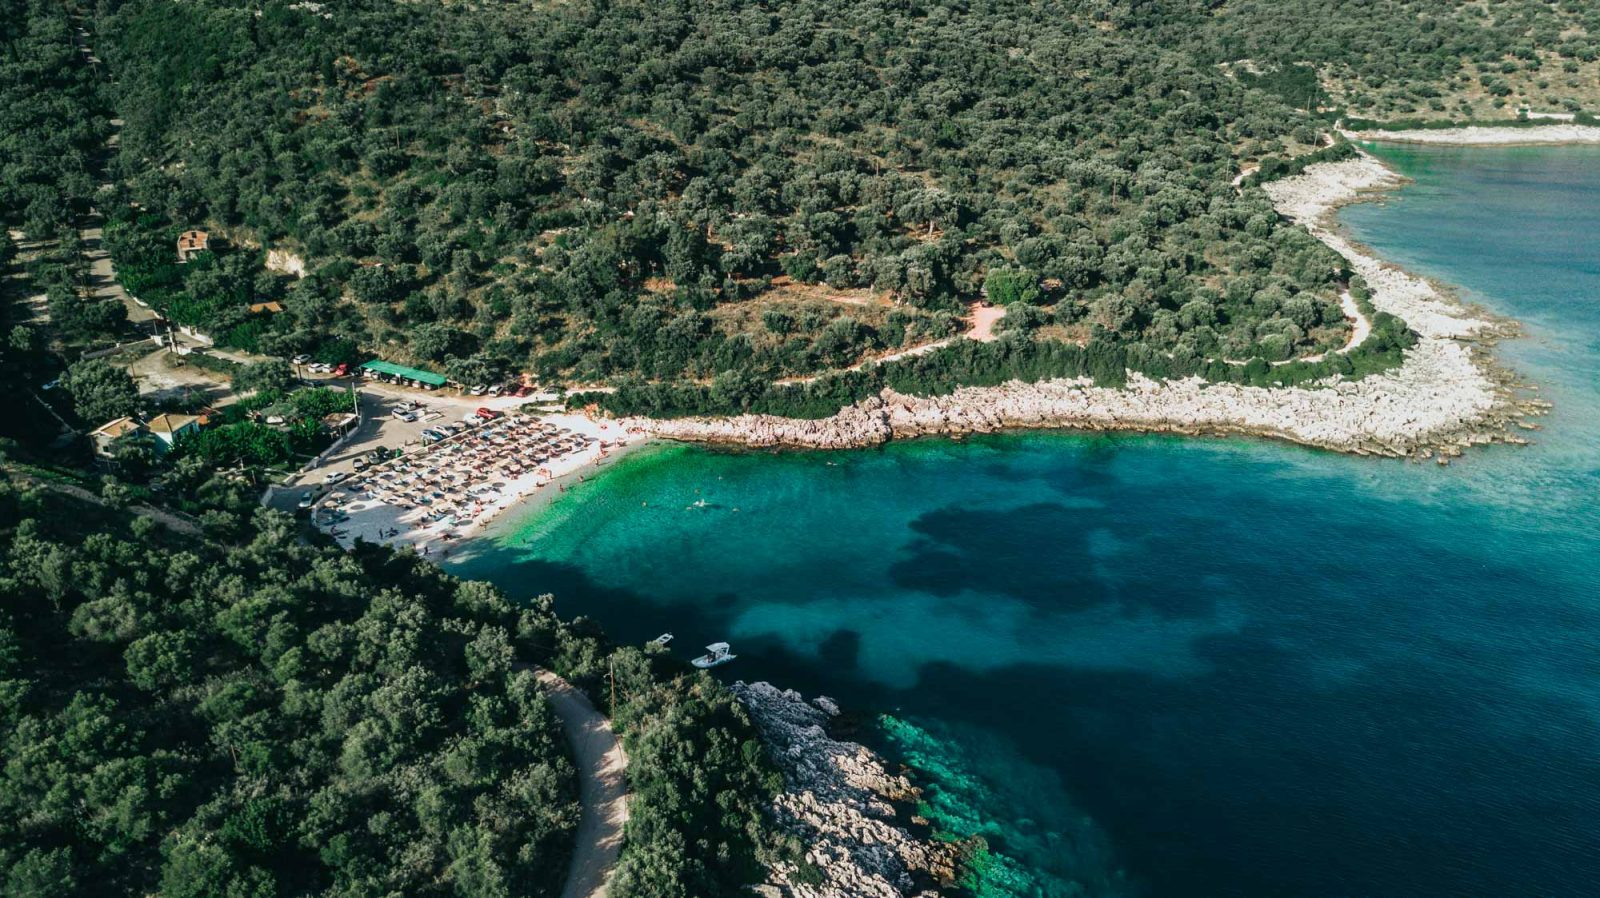 Ammousa is one of the best beaches in Lefkada